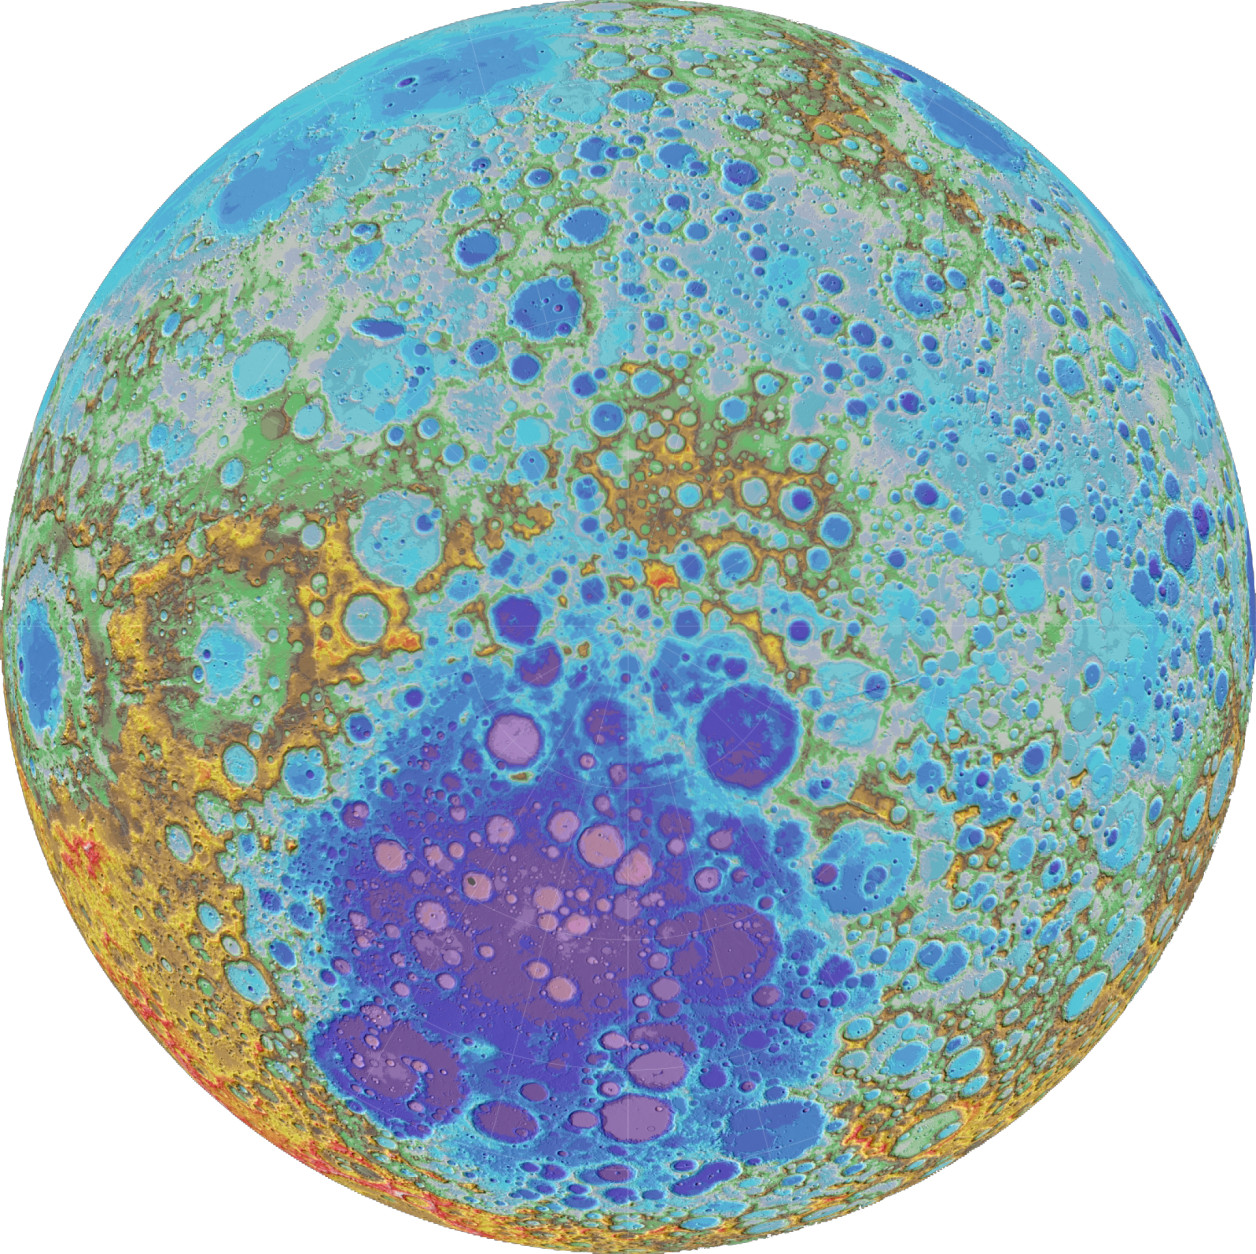 In this view of the Moon, the South Pole is at the center. The colors represent different elevations. The large, roughly circular, low-lying area (deep blue and purple) is the South Pole–Aitken Basin, the largest and deepest impact feature on the Moon. (NASA/Goddard Space Flight Center/Arizona State University)